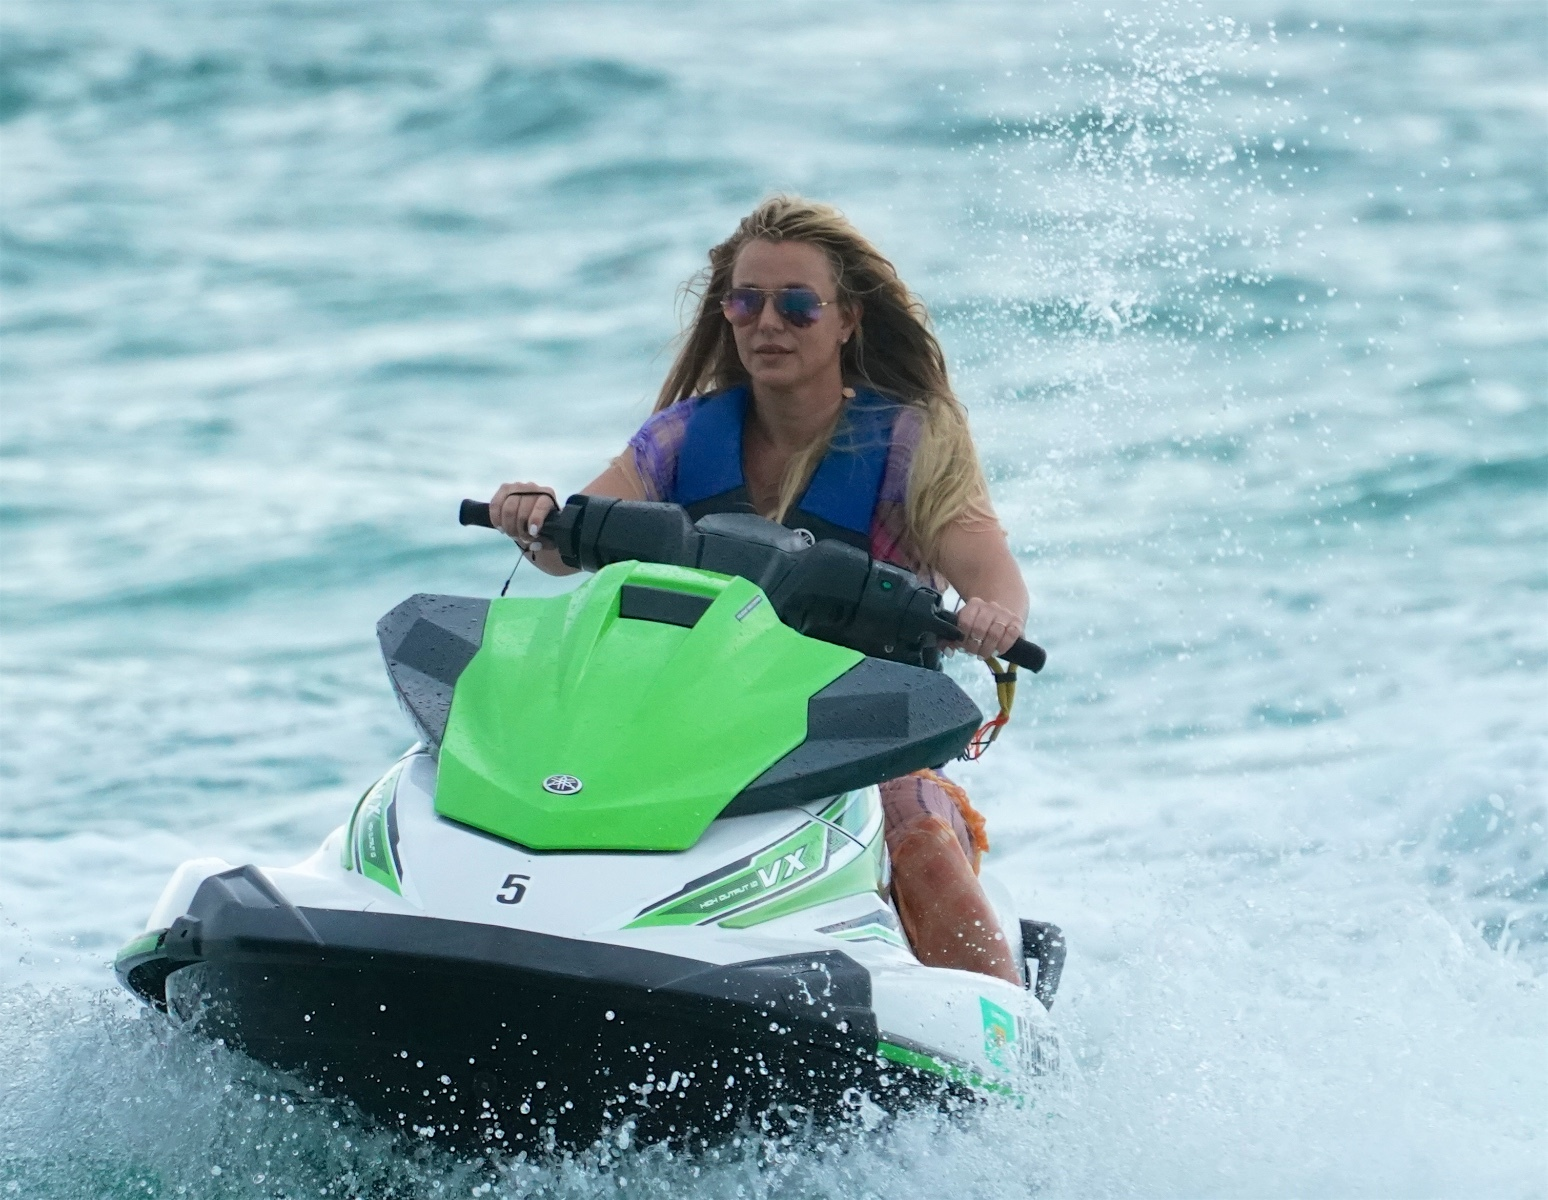 Britney Spears goes jet skiing in Miami beach on June 9, 2019.